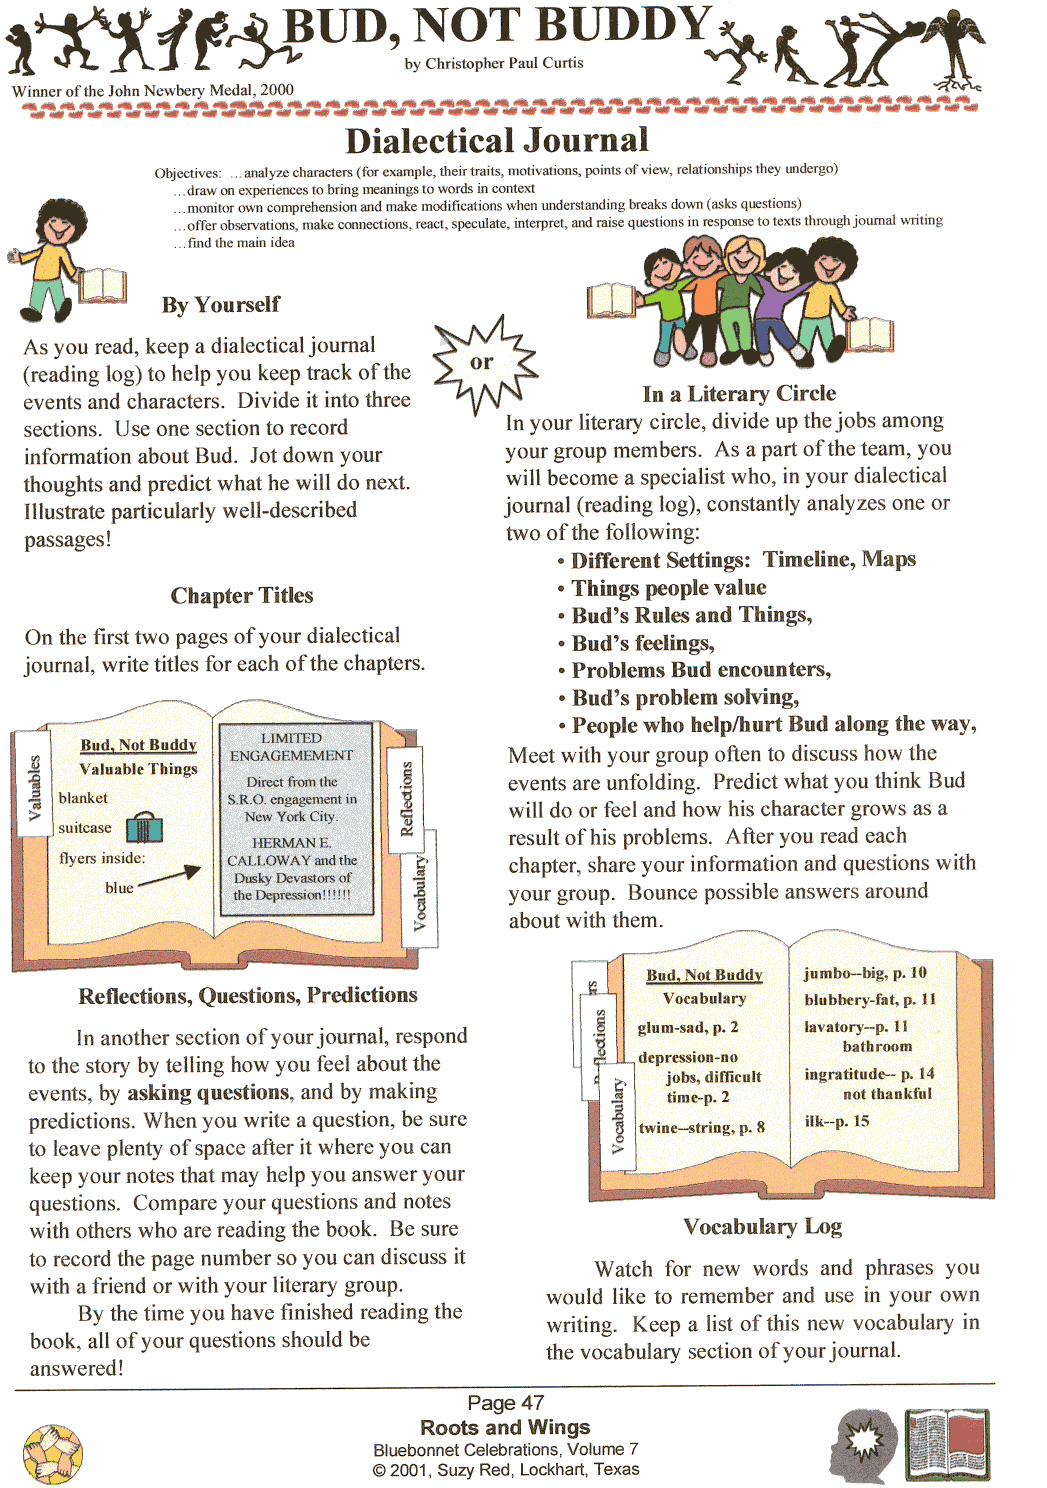 Printables Bud Not Buddy Worksheets Messygracebook Thousands Of Printable Activities